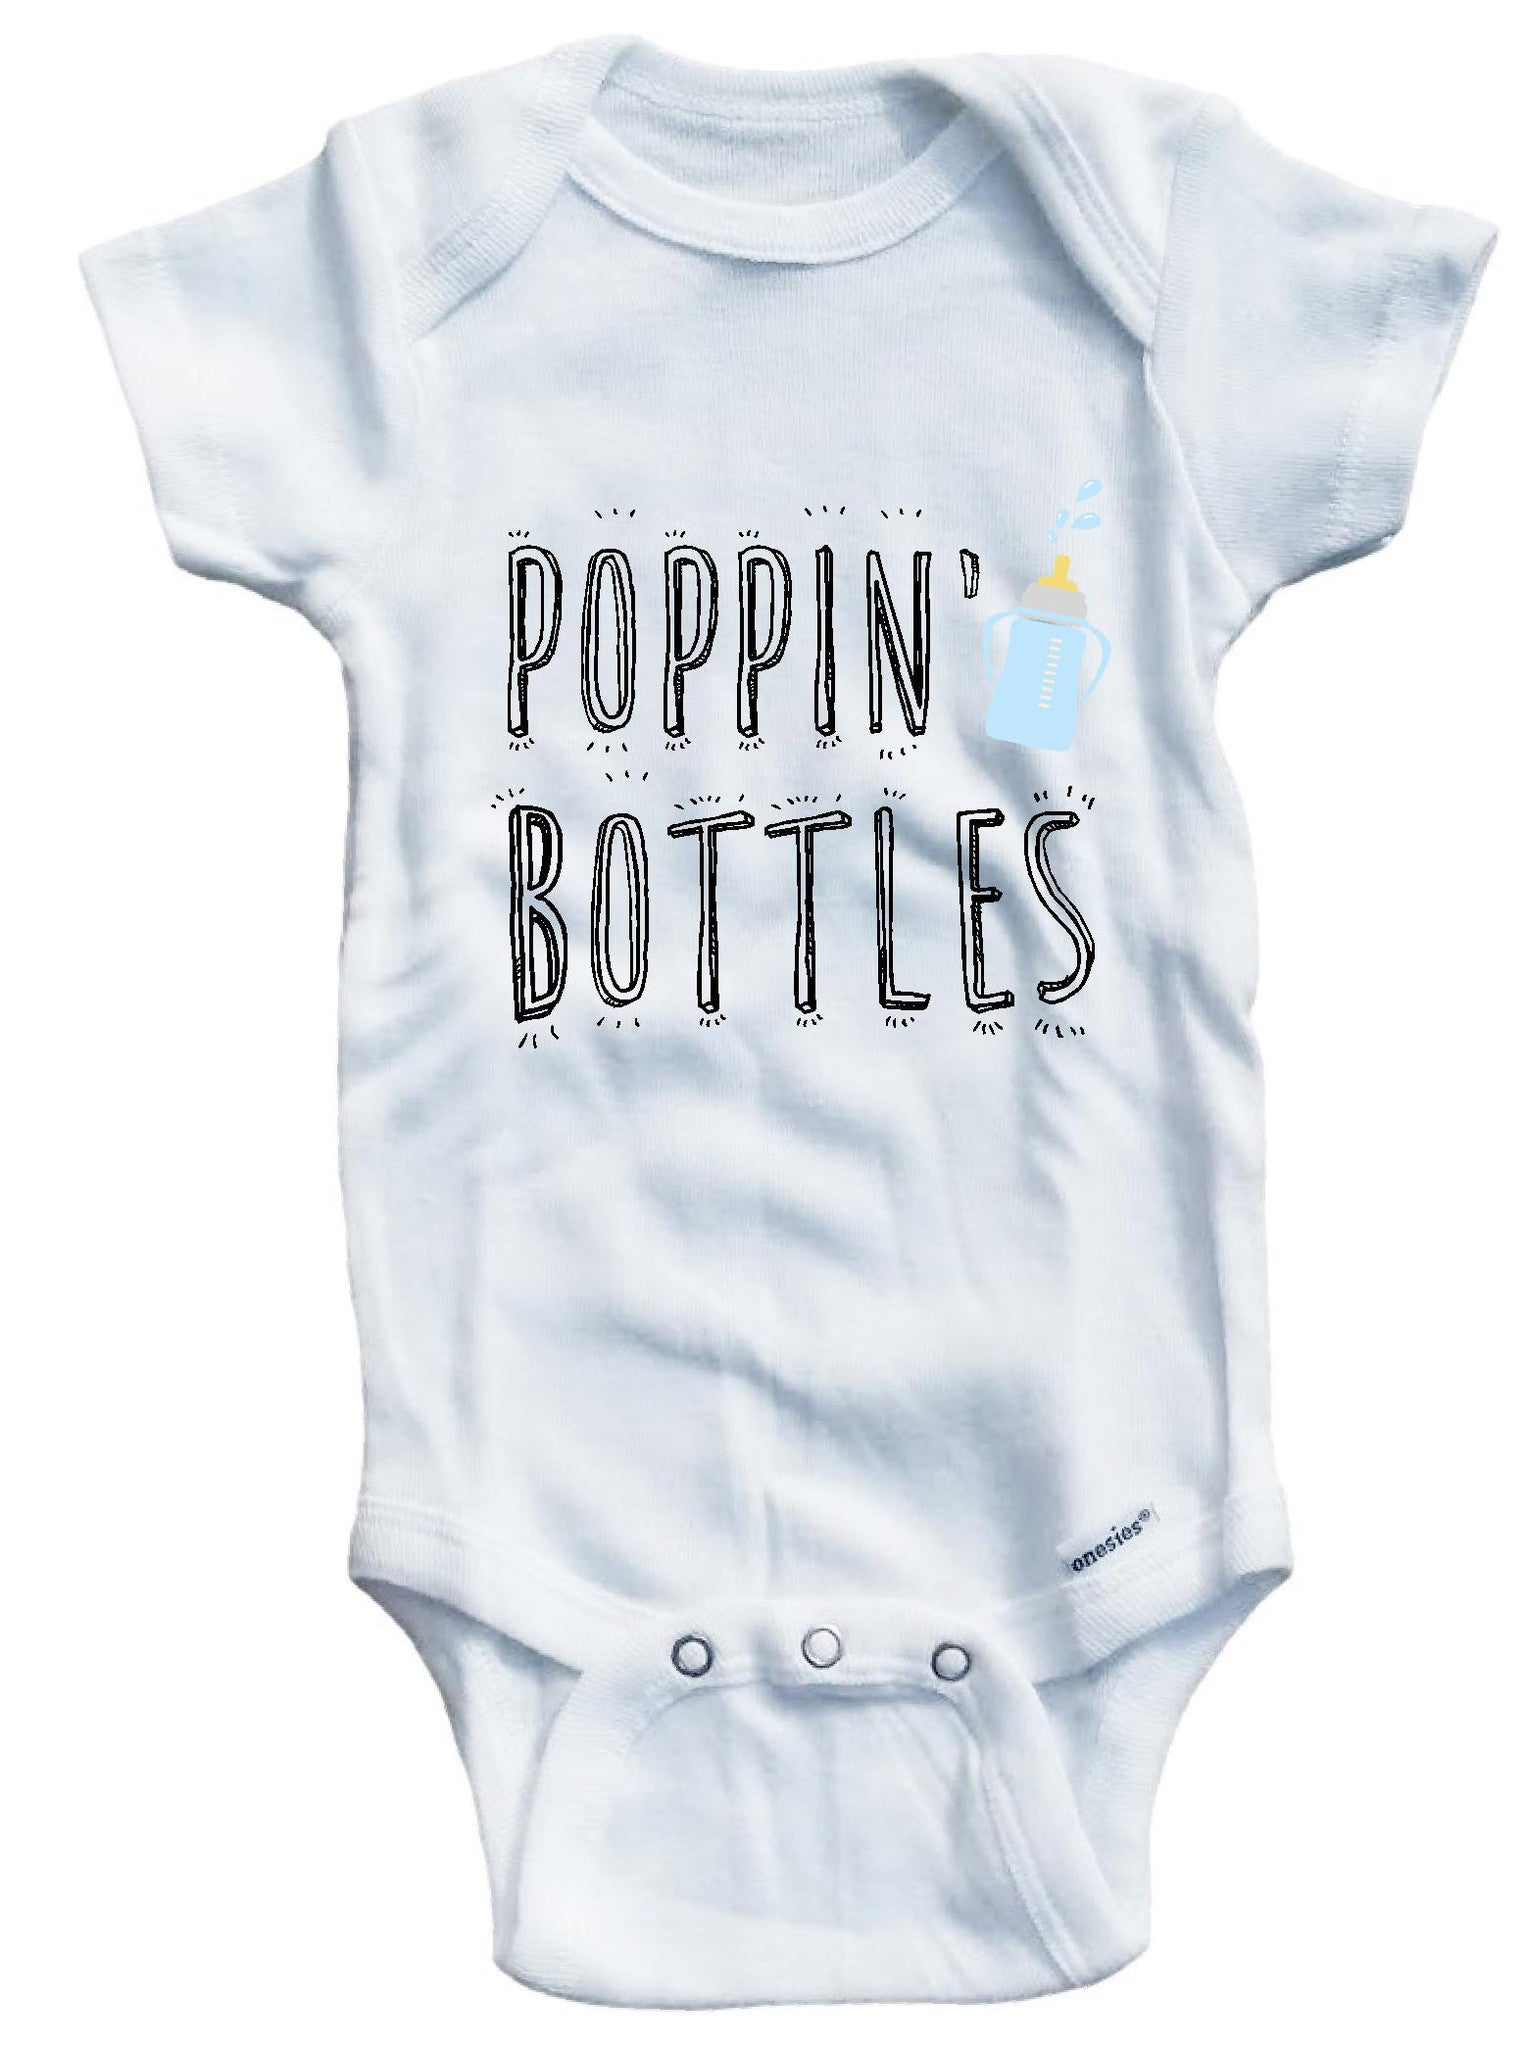 Poppin bottles cute funny baby clothes bodysuit one piece onesie